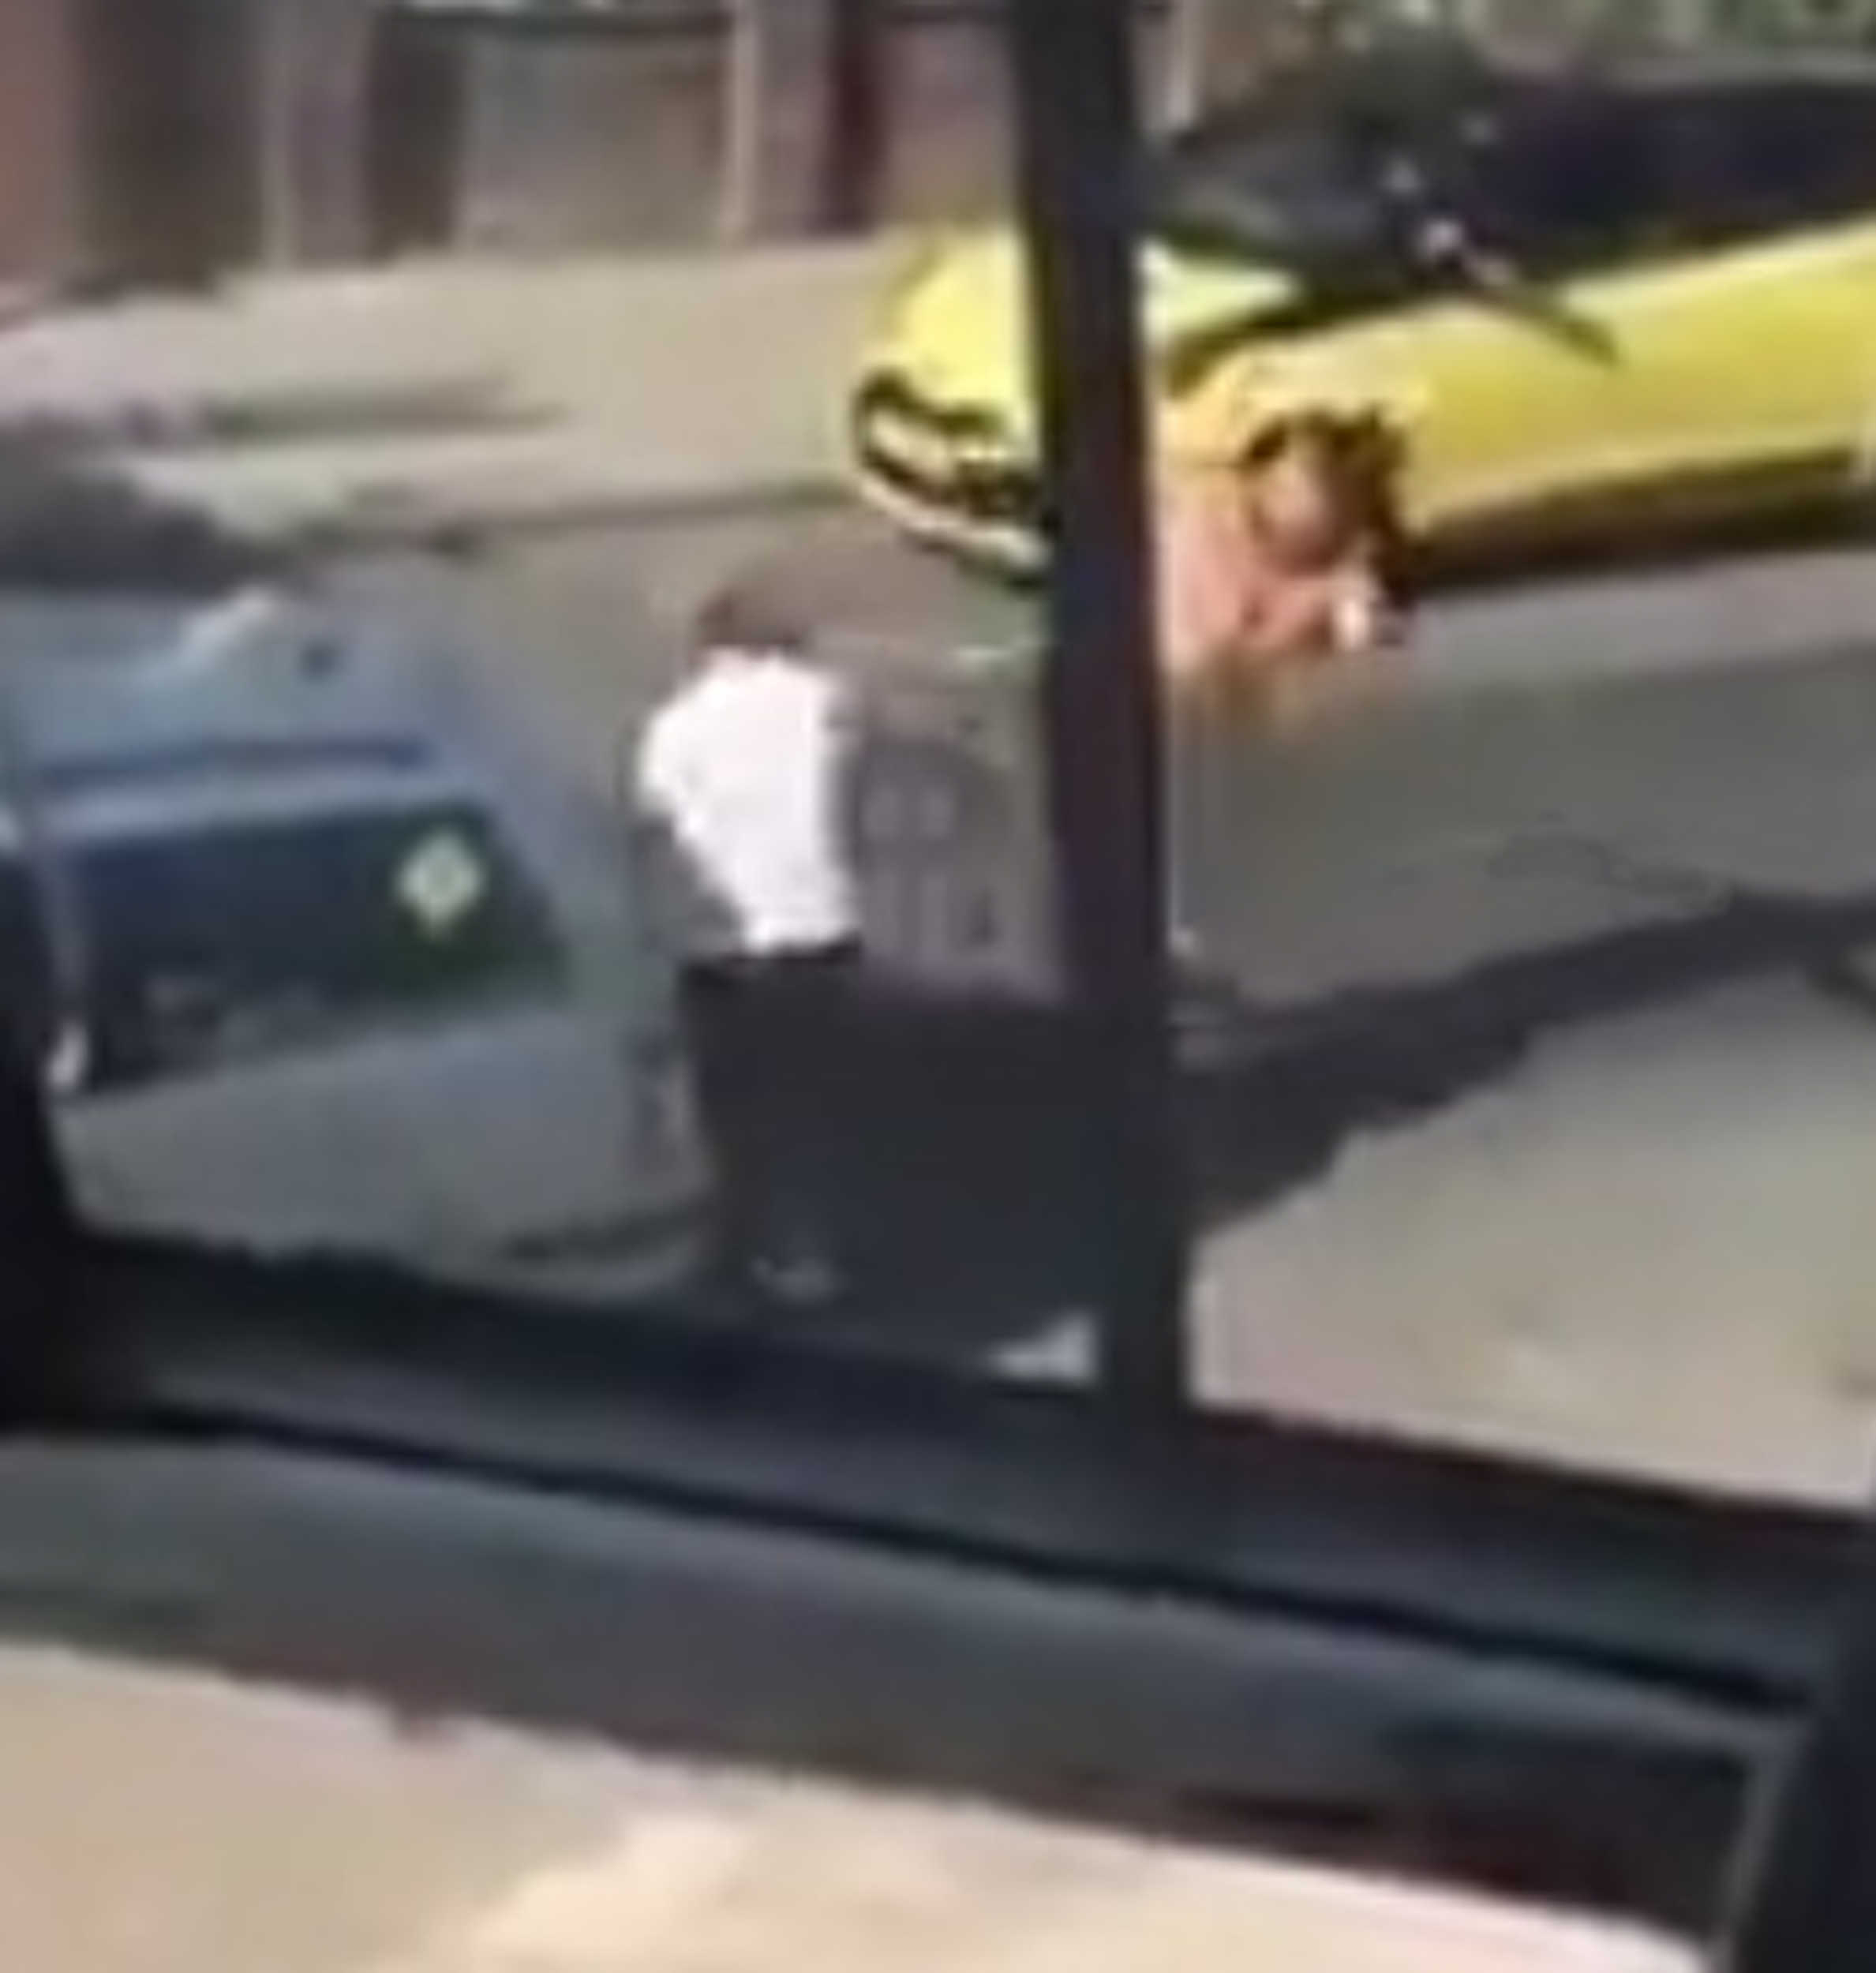 This is the moment one of the men delivers a kick to the other man| By Deadline News, Viral Video News